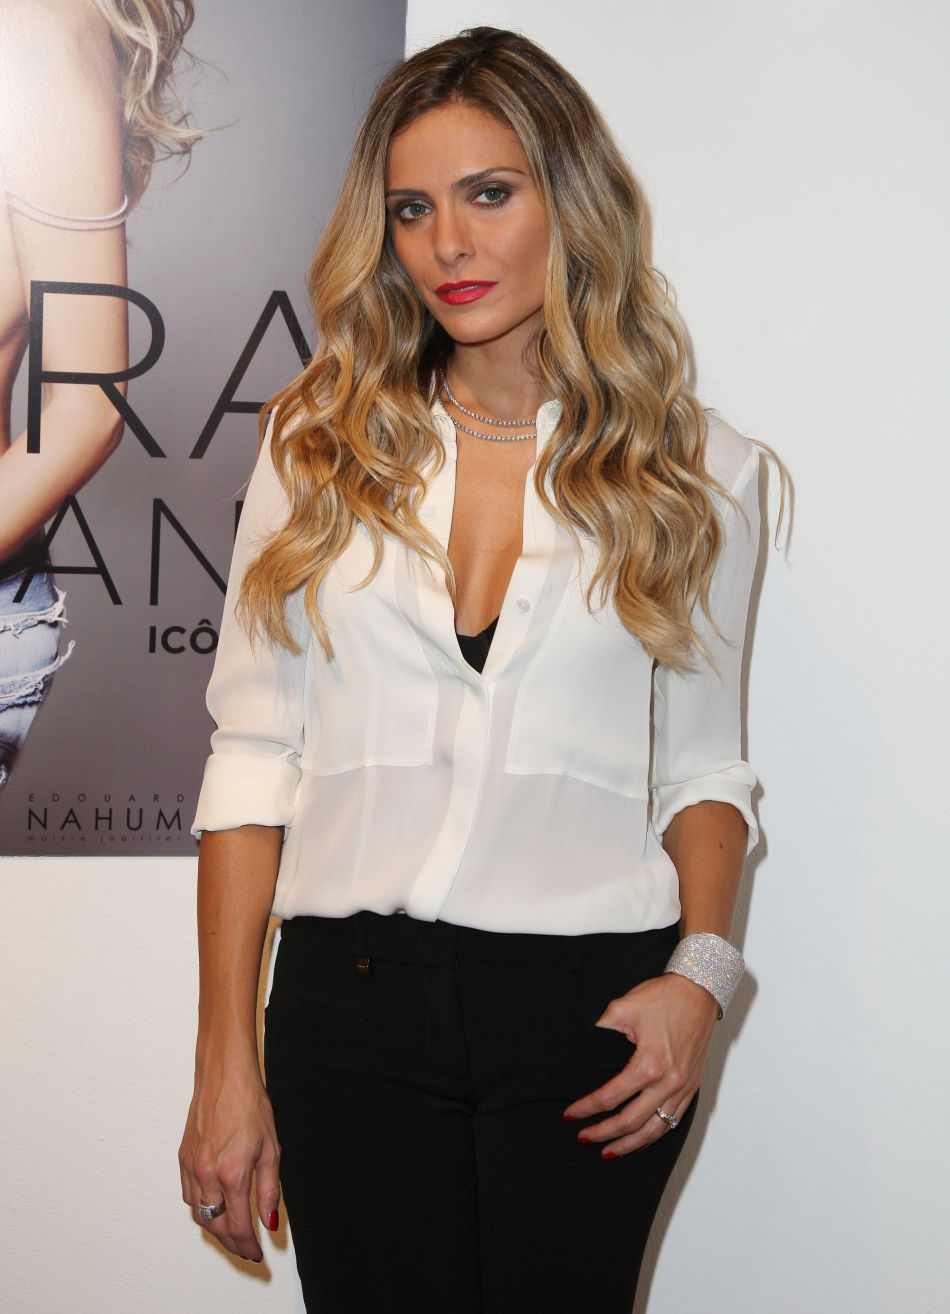 Clara Morgane lance une nouvelle version de son site internet.